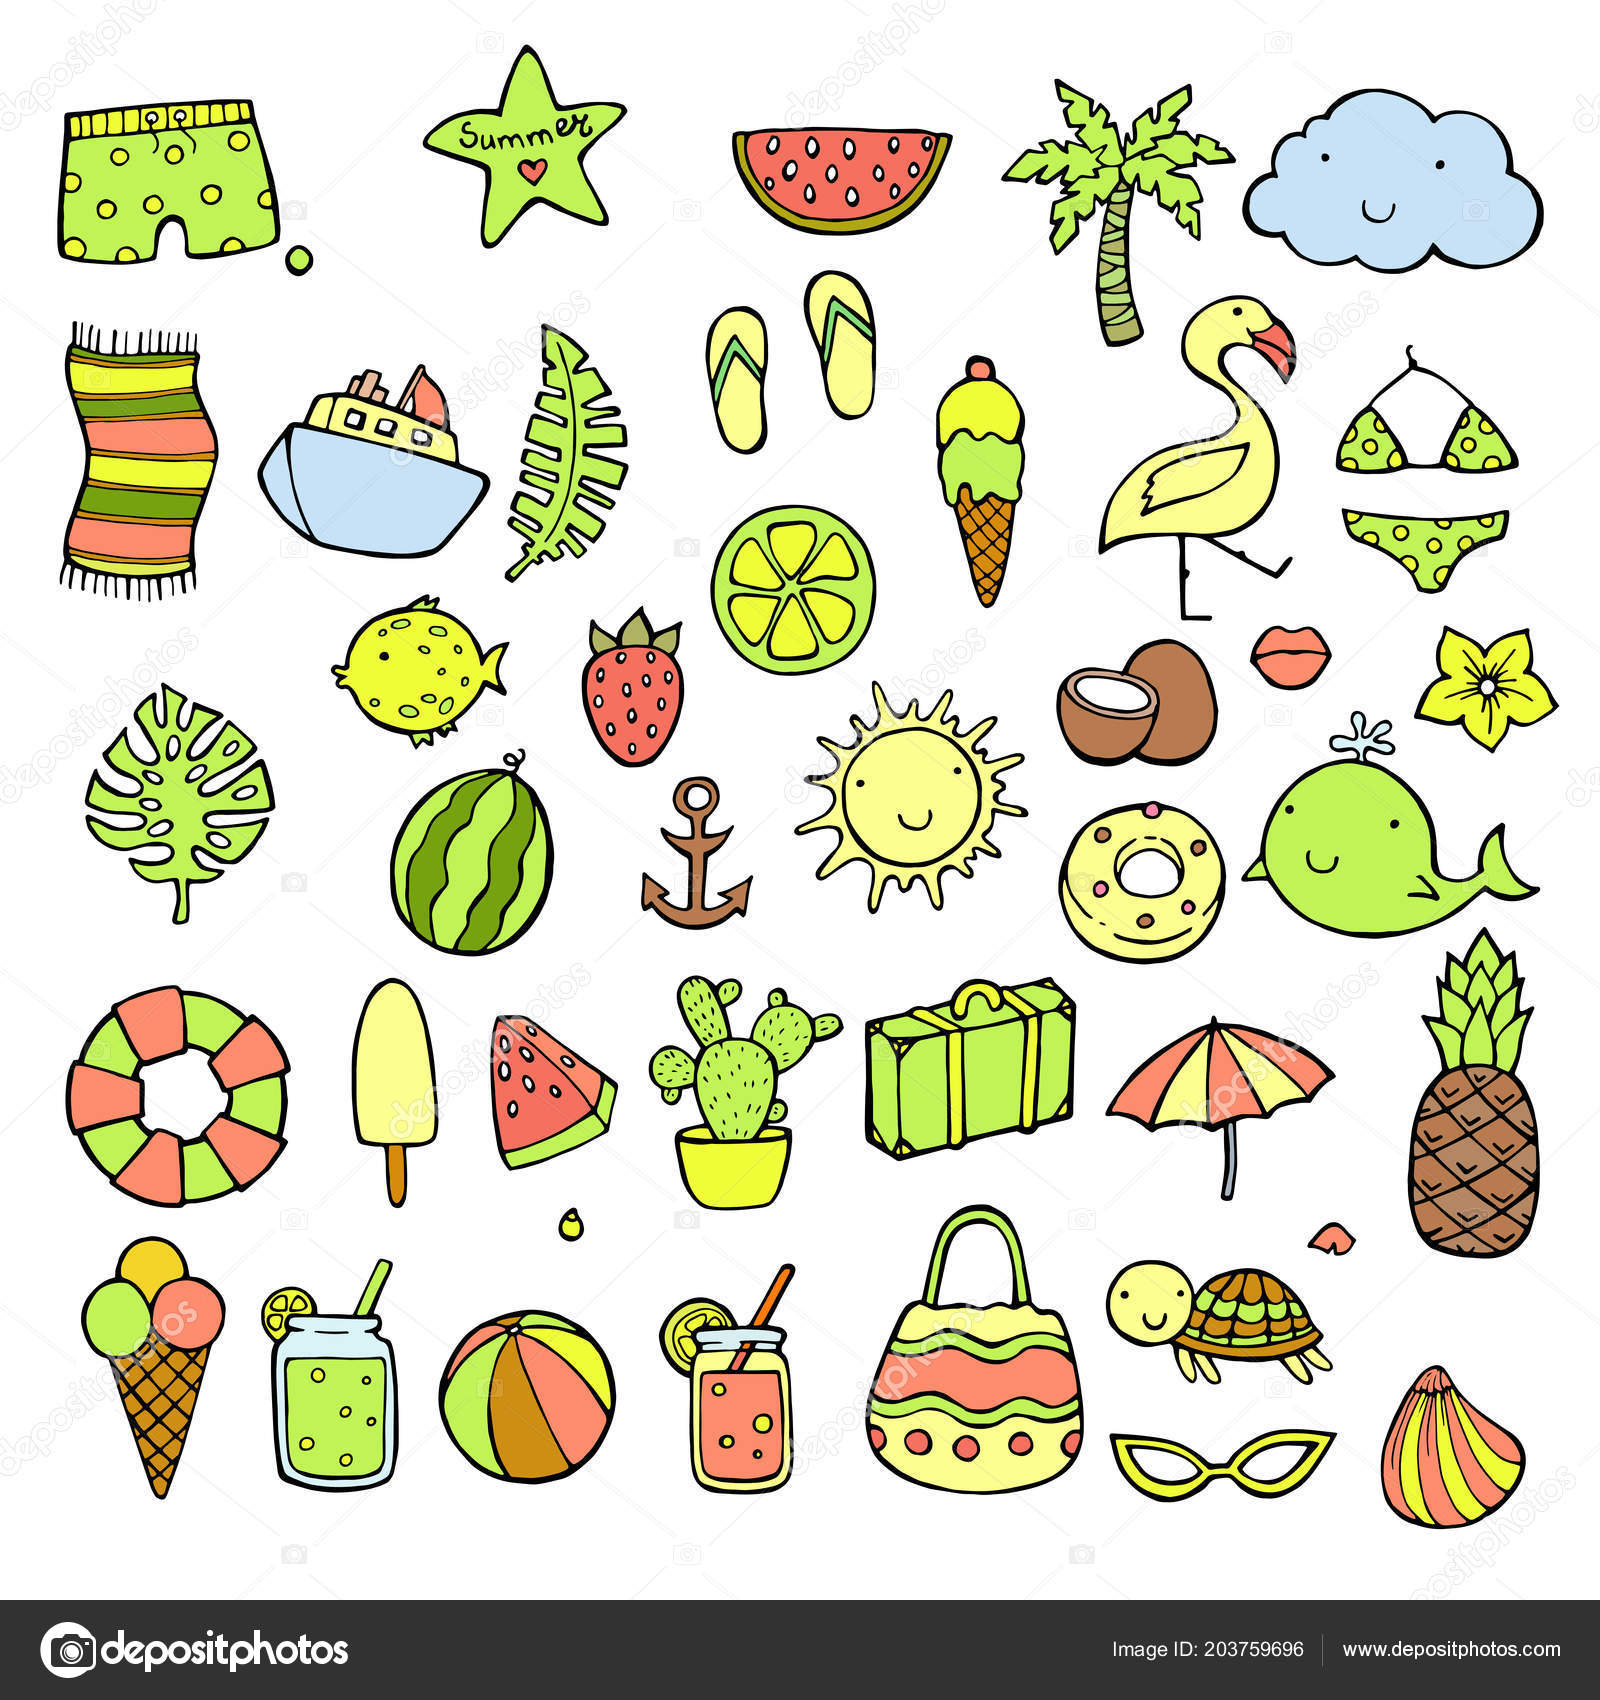 Hand drawn summer icons set  Doodle icon style  Tropical